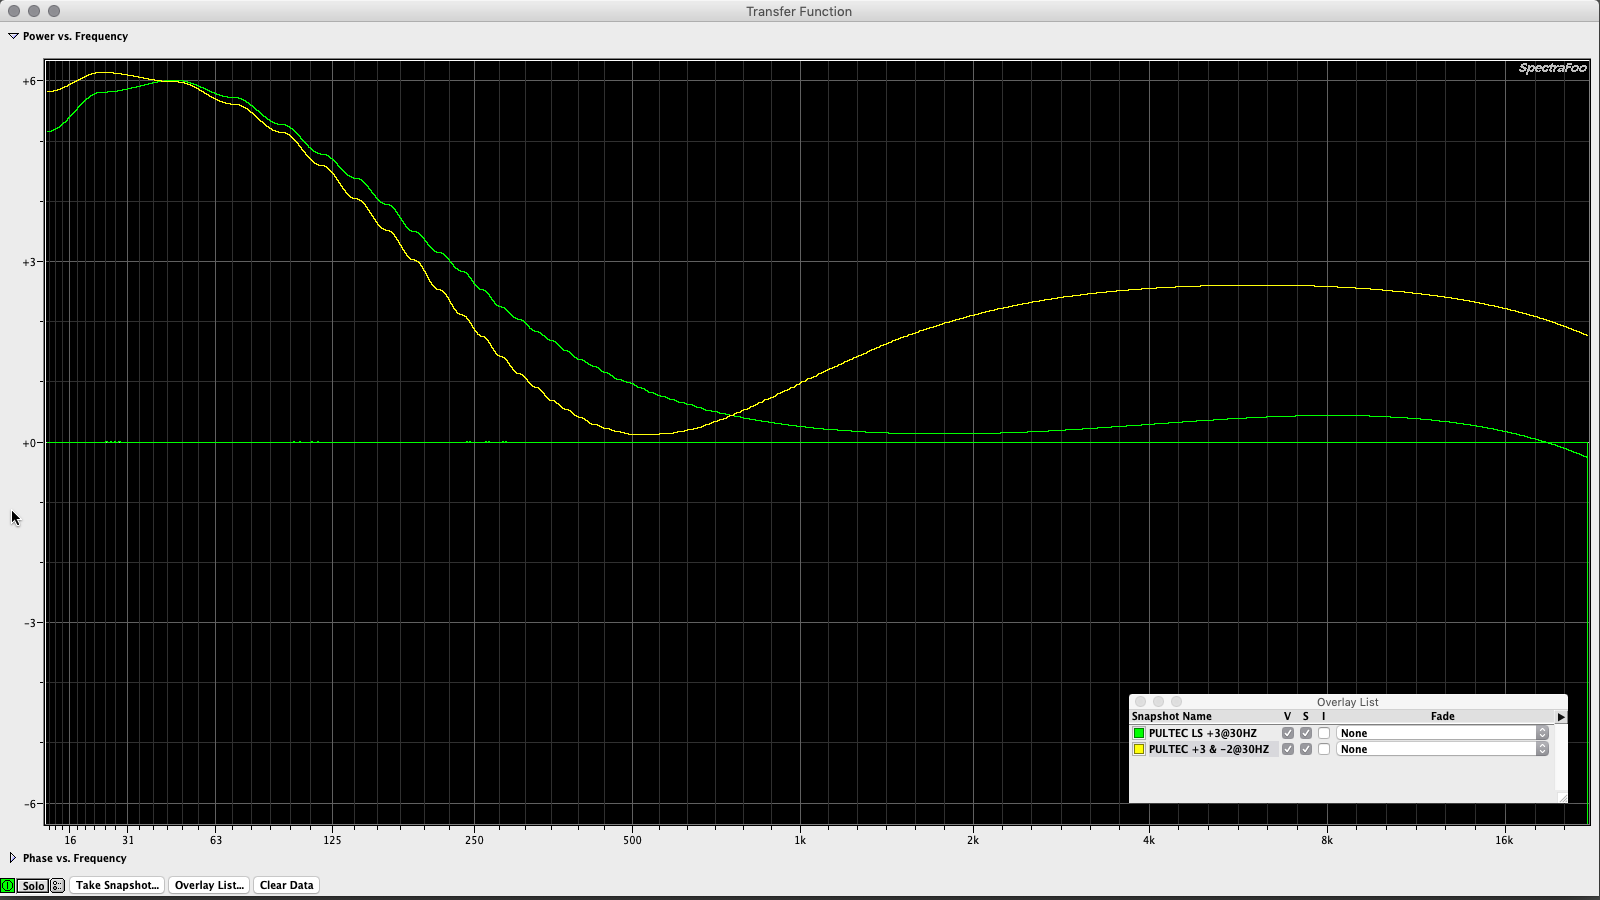 Boost only [green], boost plus attenuate [yellow]